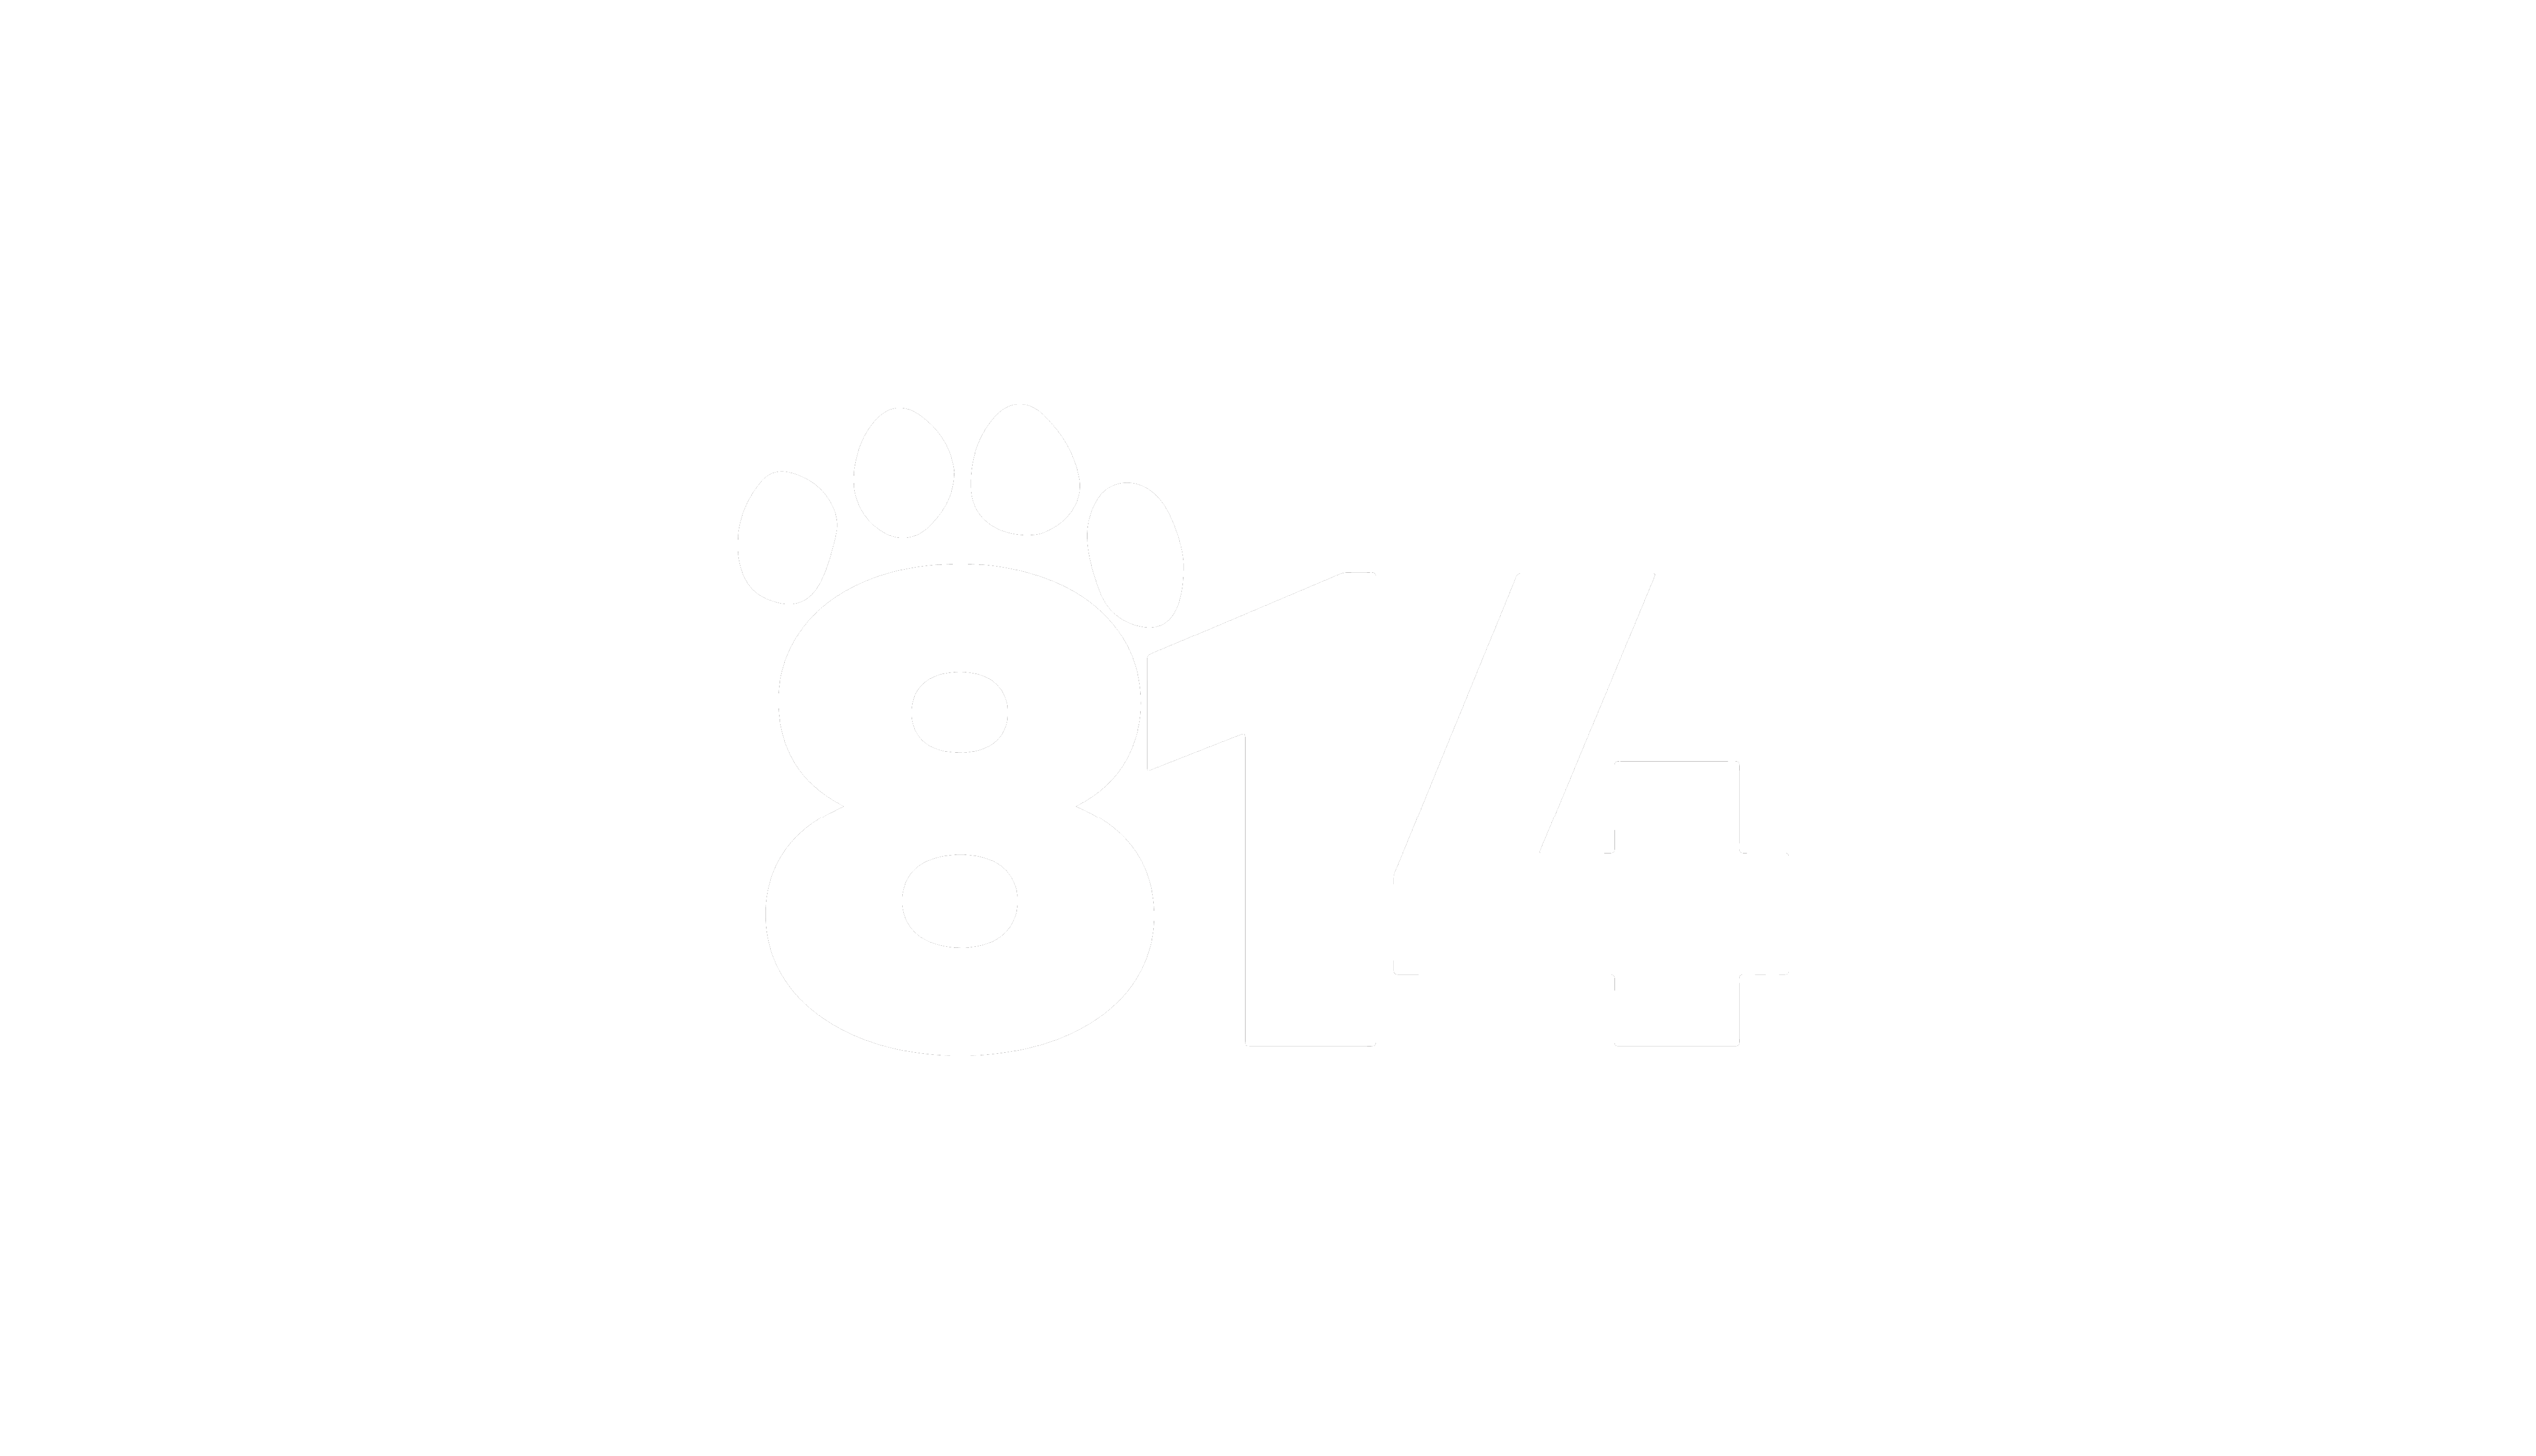 814 Paw Print State Outline